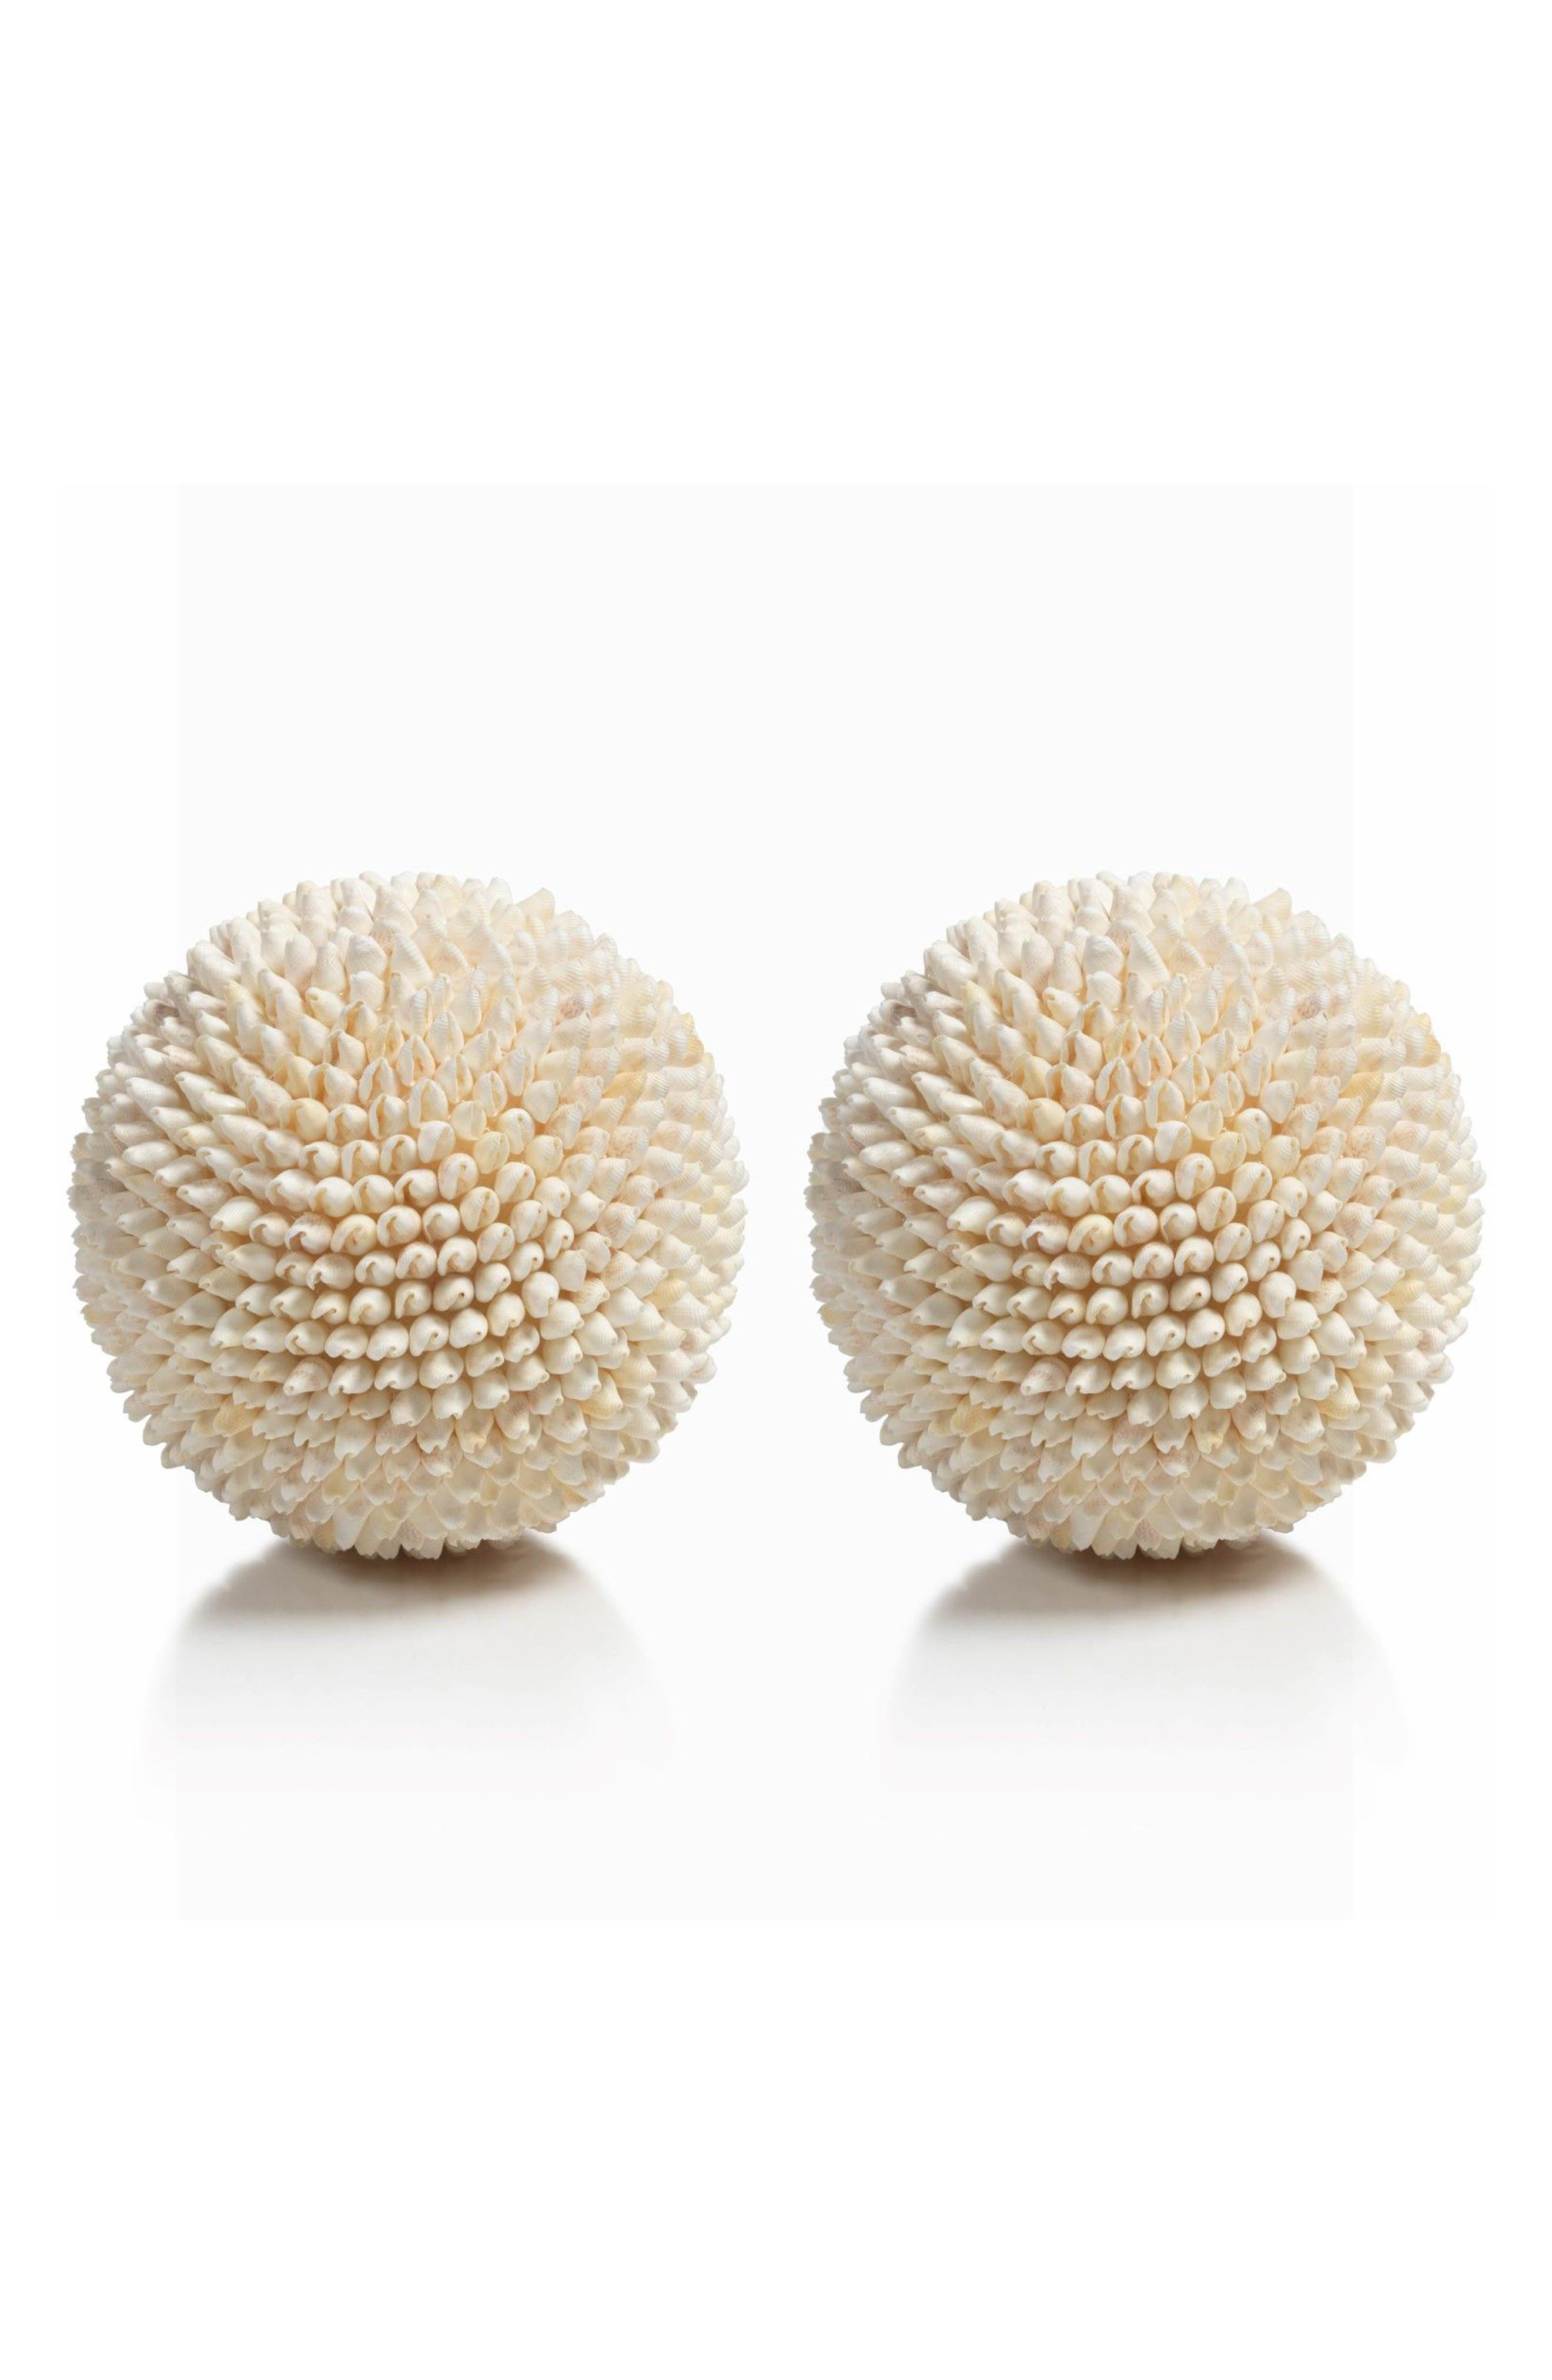 ZODAX Palay Set of 2 Shell Decorations, Main, color, 250